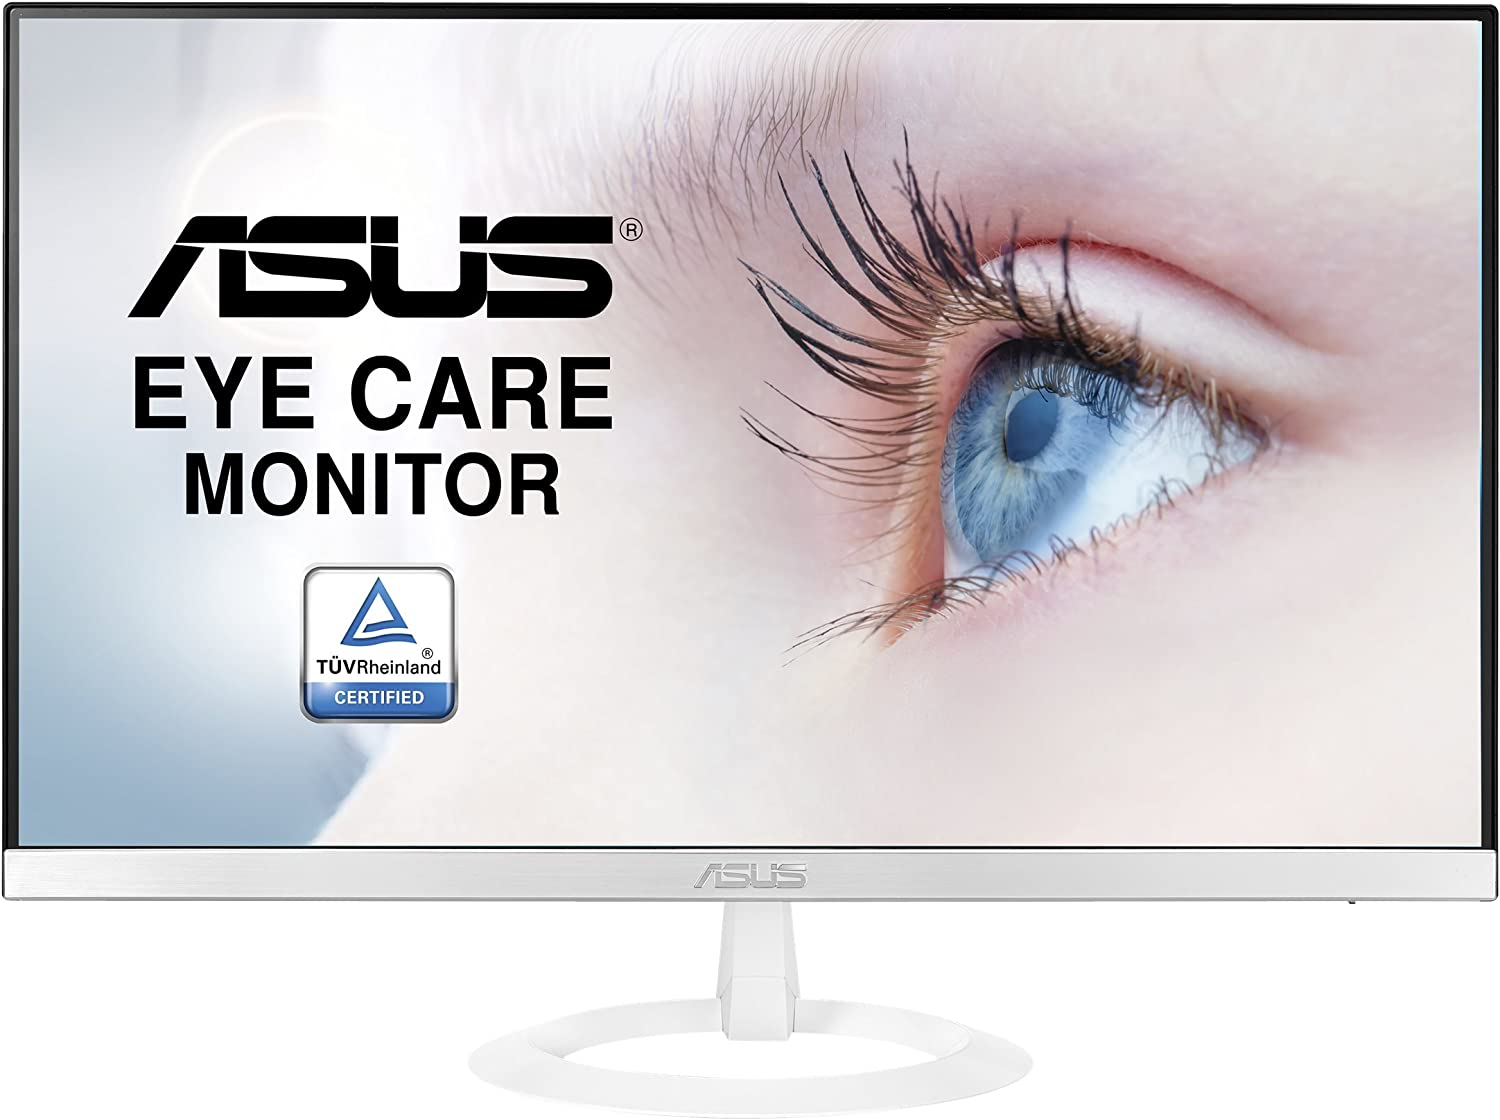 Top LCD For Eye Strain in 2020,LCD Eye Strain, DigitalUpBeat - Your one step shop for all your  tech gifts and gadgets